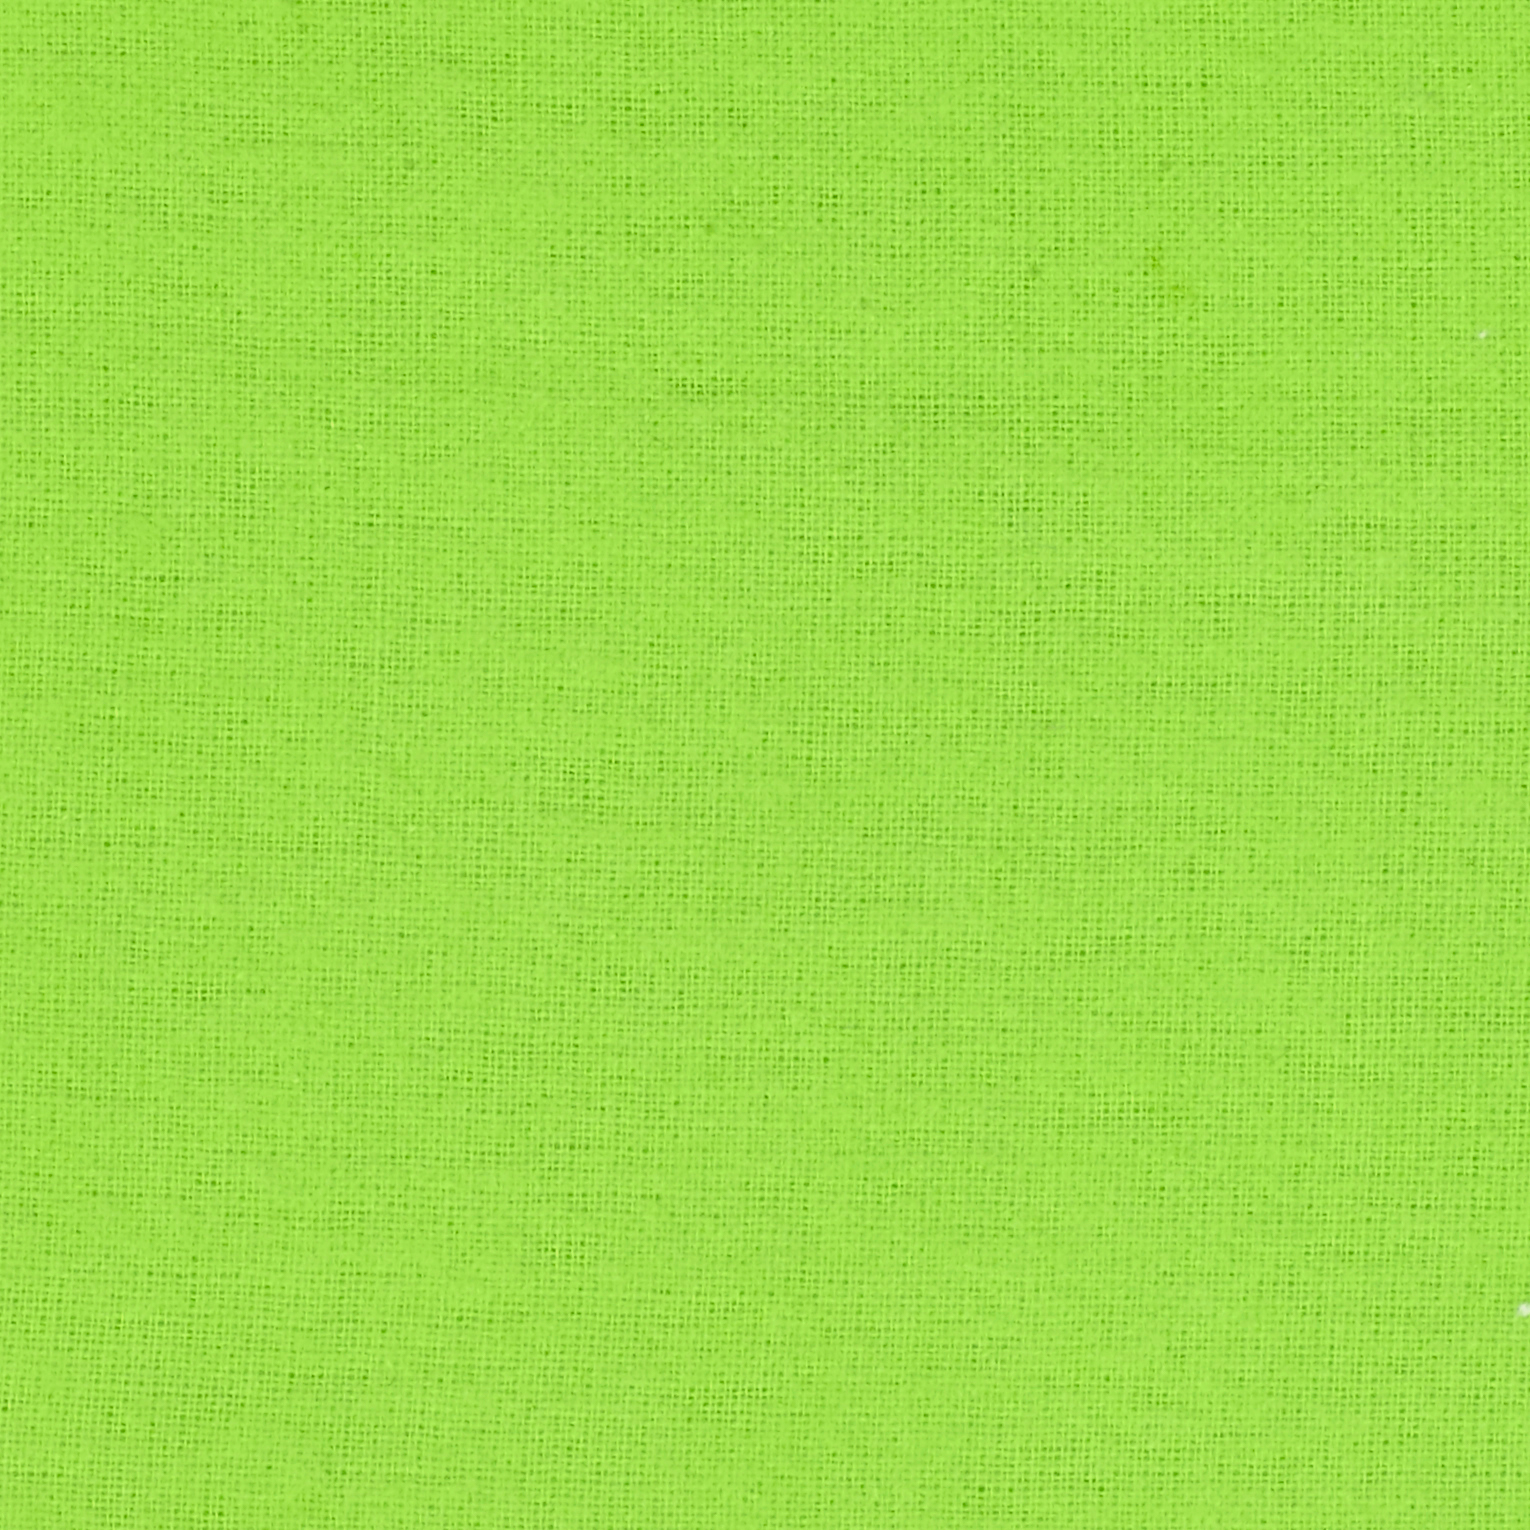 Alpine Flannel Solid Lime Fabric by Christensen in USA